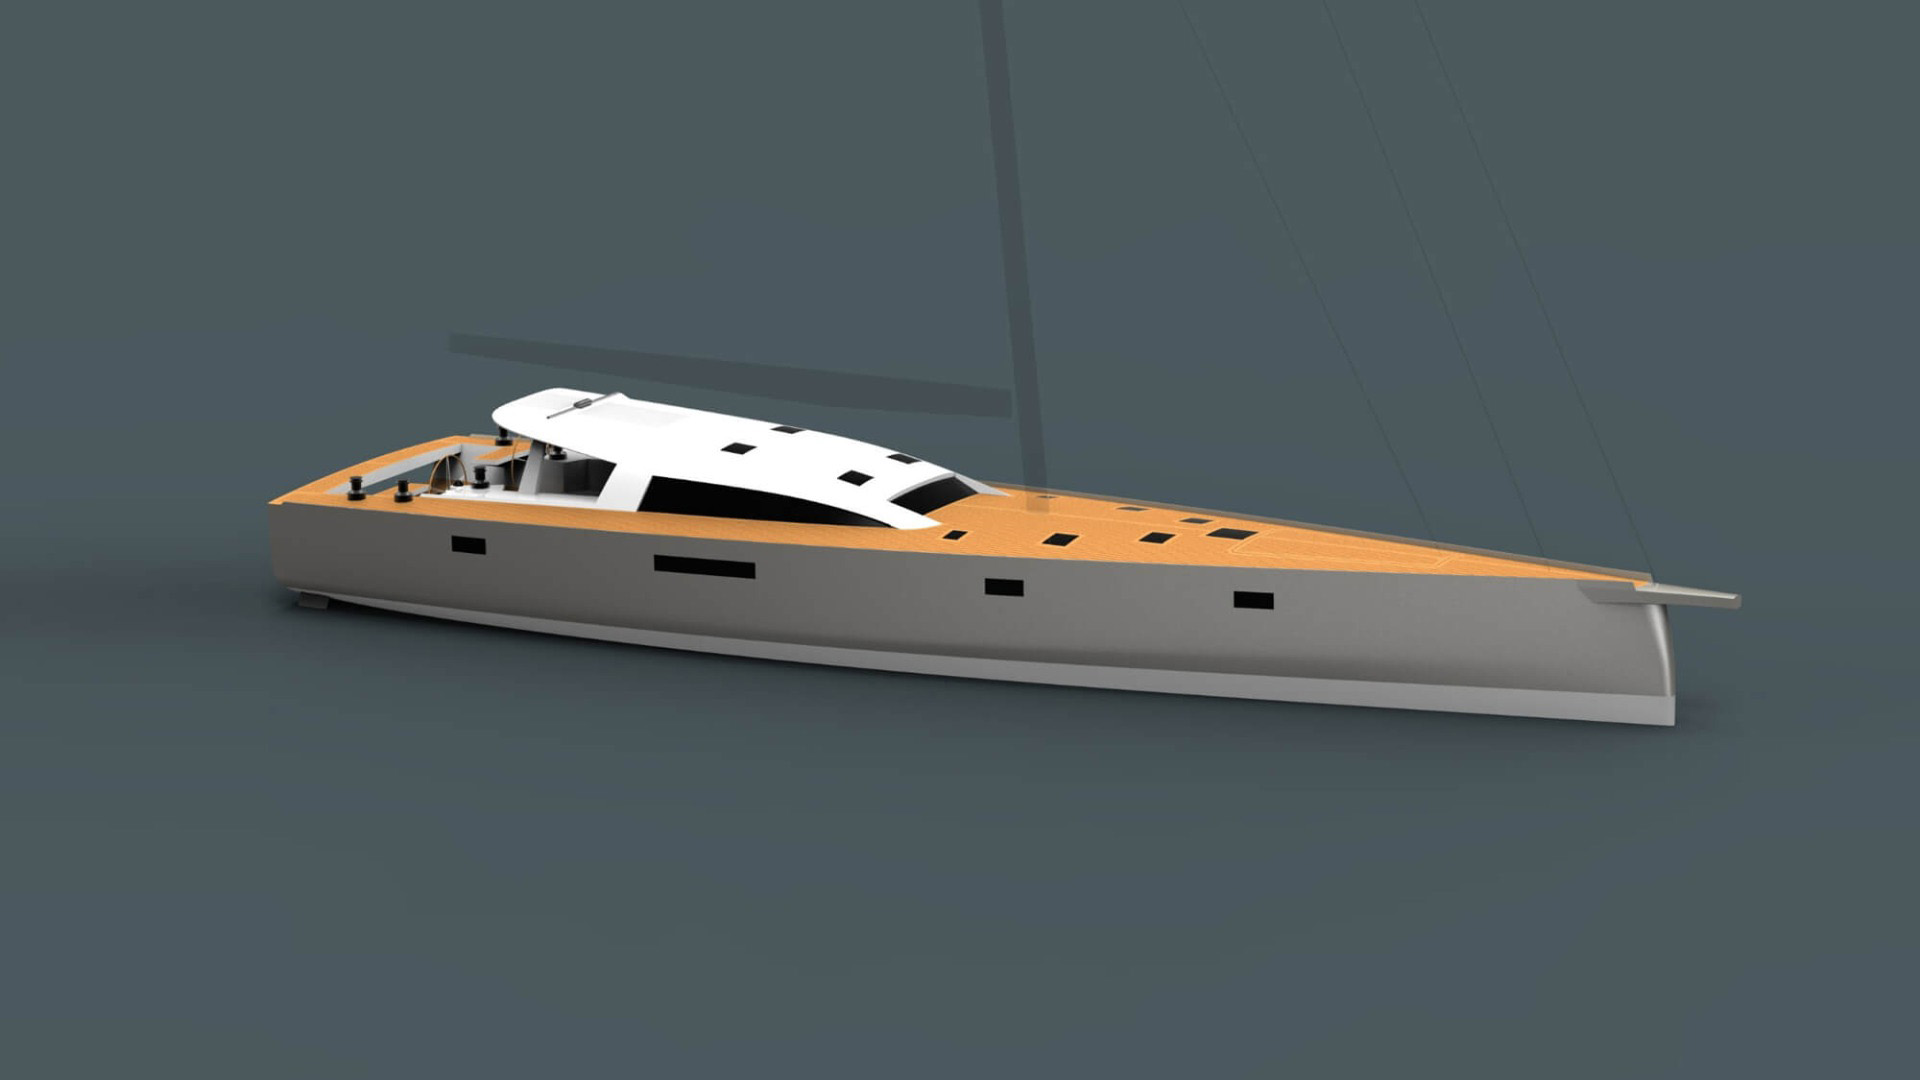 Owen Clarke Design (OCD) are pleased to announce that design is well under way on a new 23m lifting keel, performance blue water custom cruising expedition yacht for a Scandinavian client. Construction will commence in Europe at a yard yet to be determined.